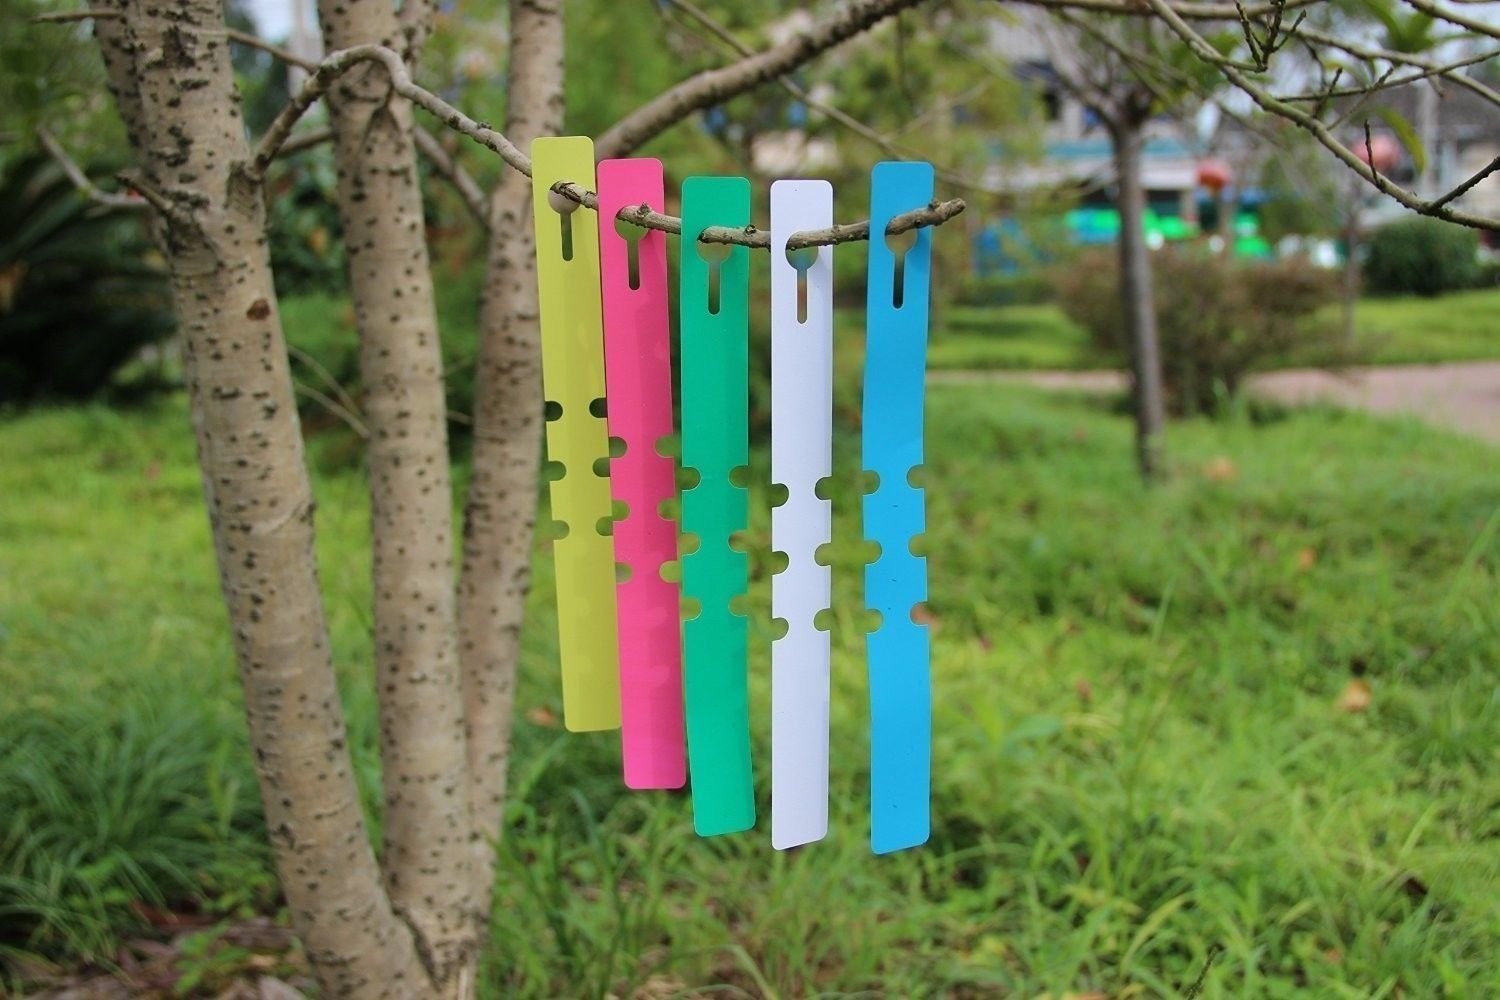 Wankko 240Pcs Assorted Colors Plastic Plant Tree Tags Garden Plant Lables Plant Hanging Tags 20x2cm Wrap Around Nursery Garden Labels Large Writing Surface Markers Reusable